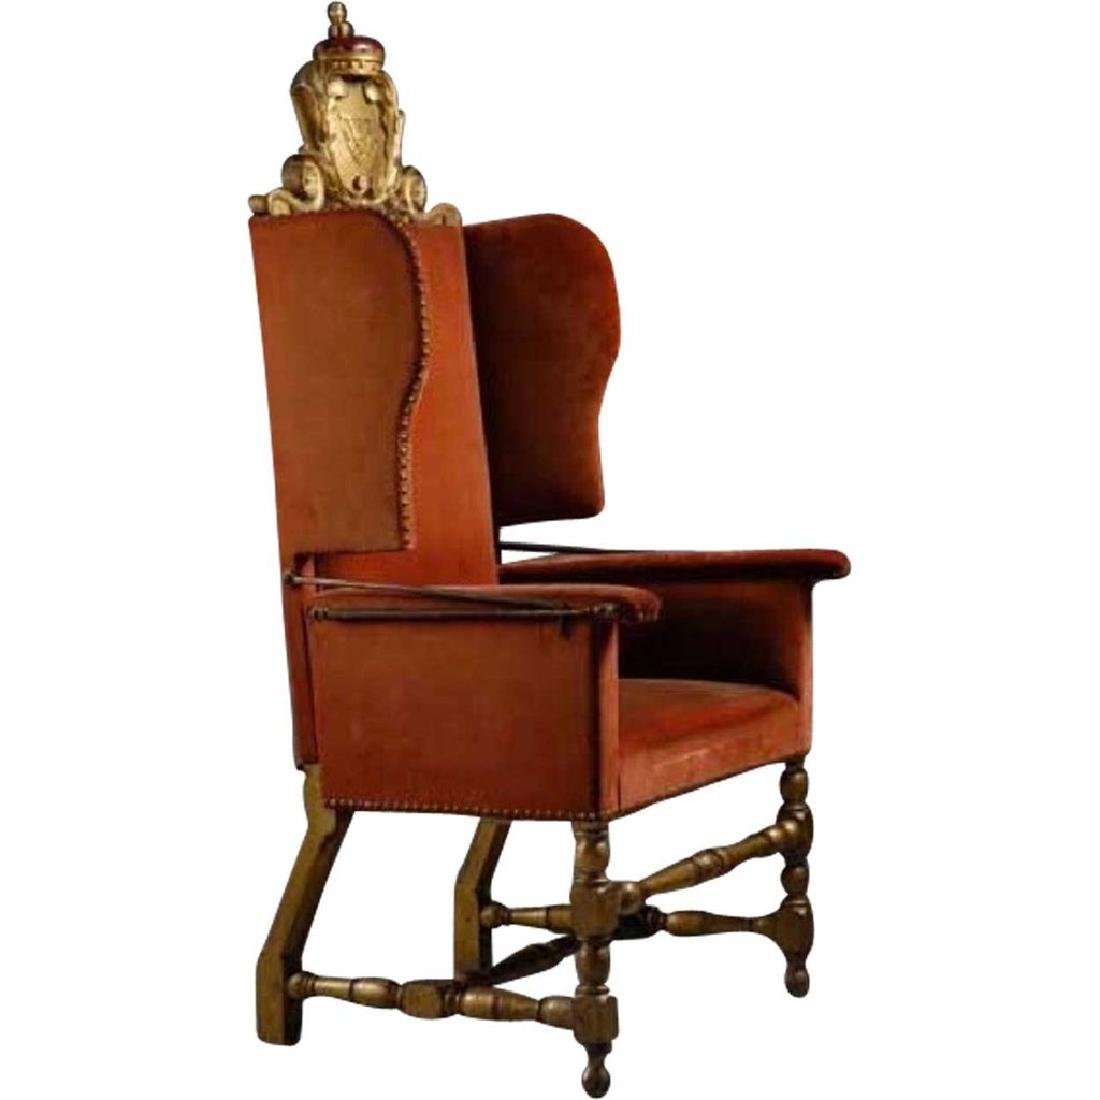 Rare Danish Royal Frederick IV Birch Reclining Chair